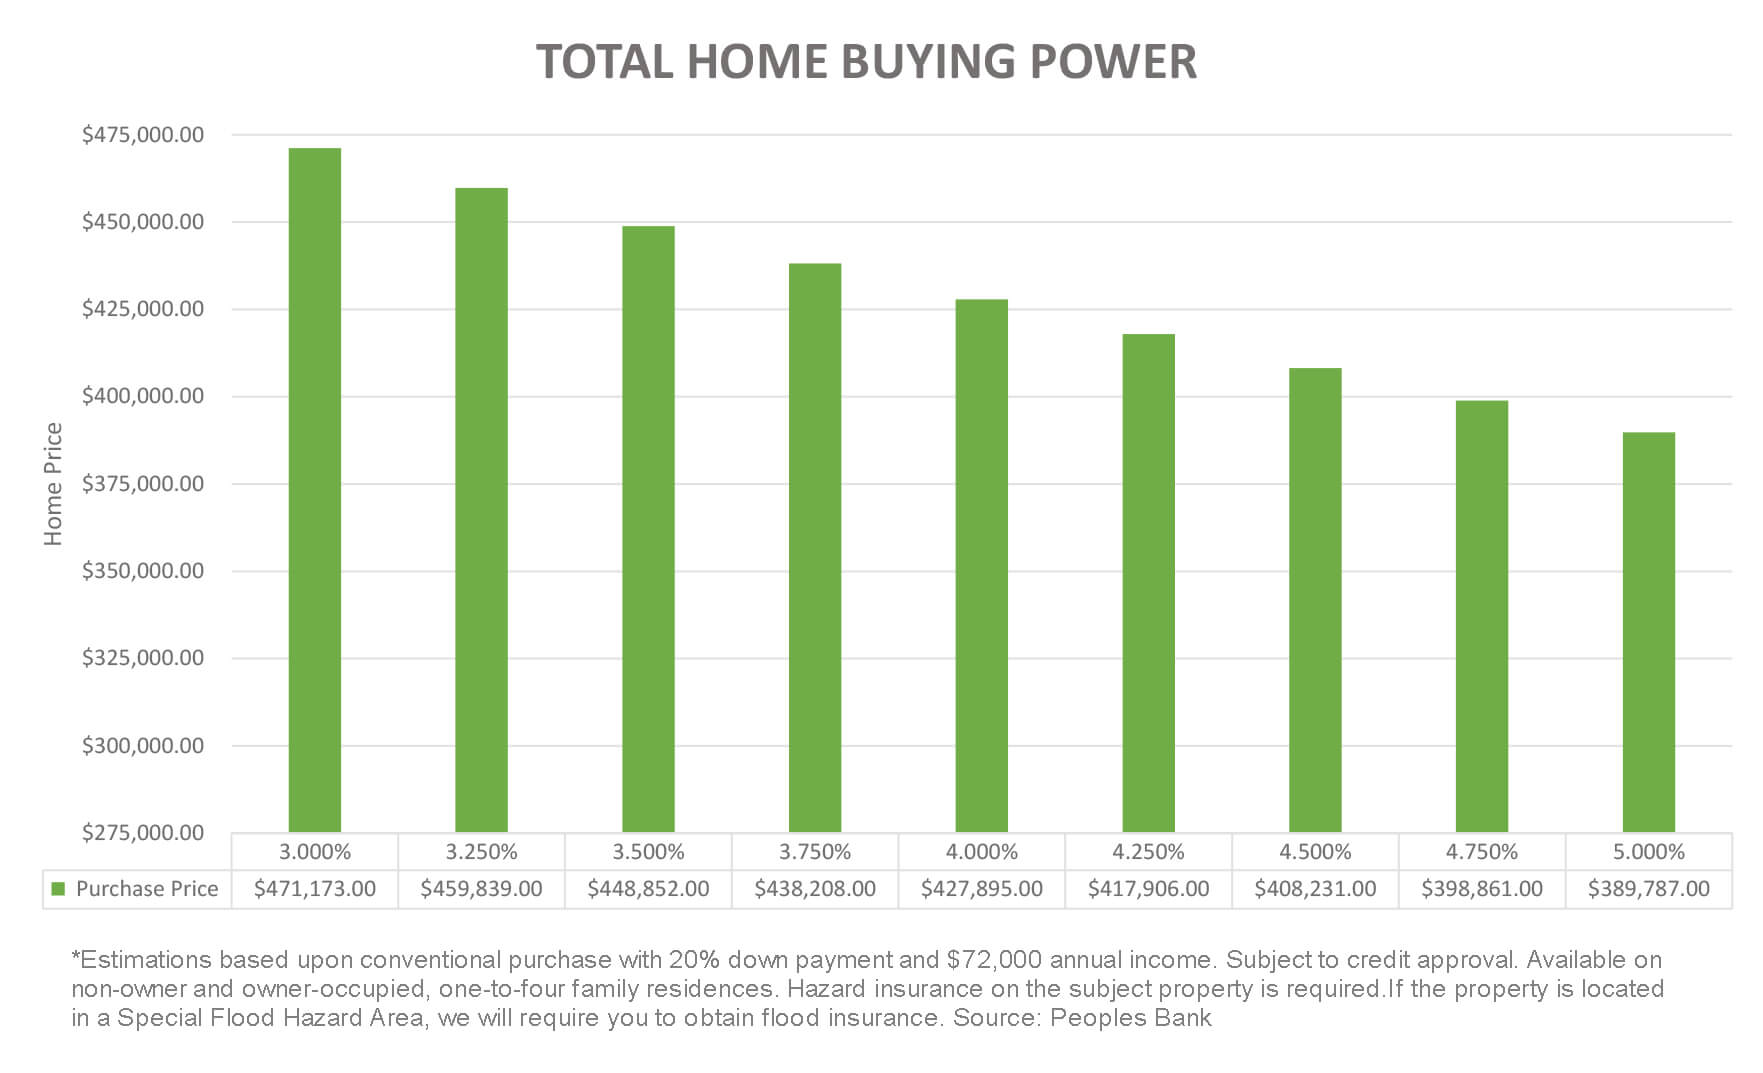 Peoples Bank Home Buying Power